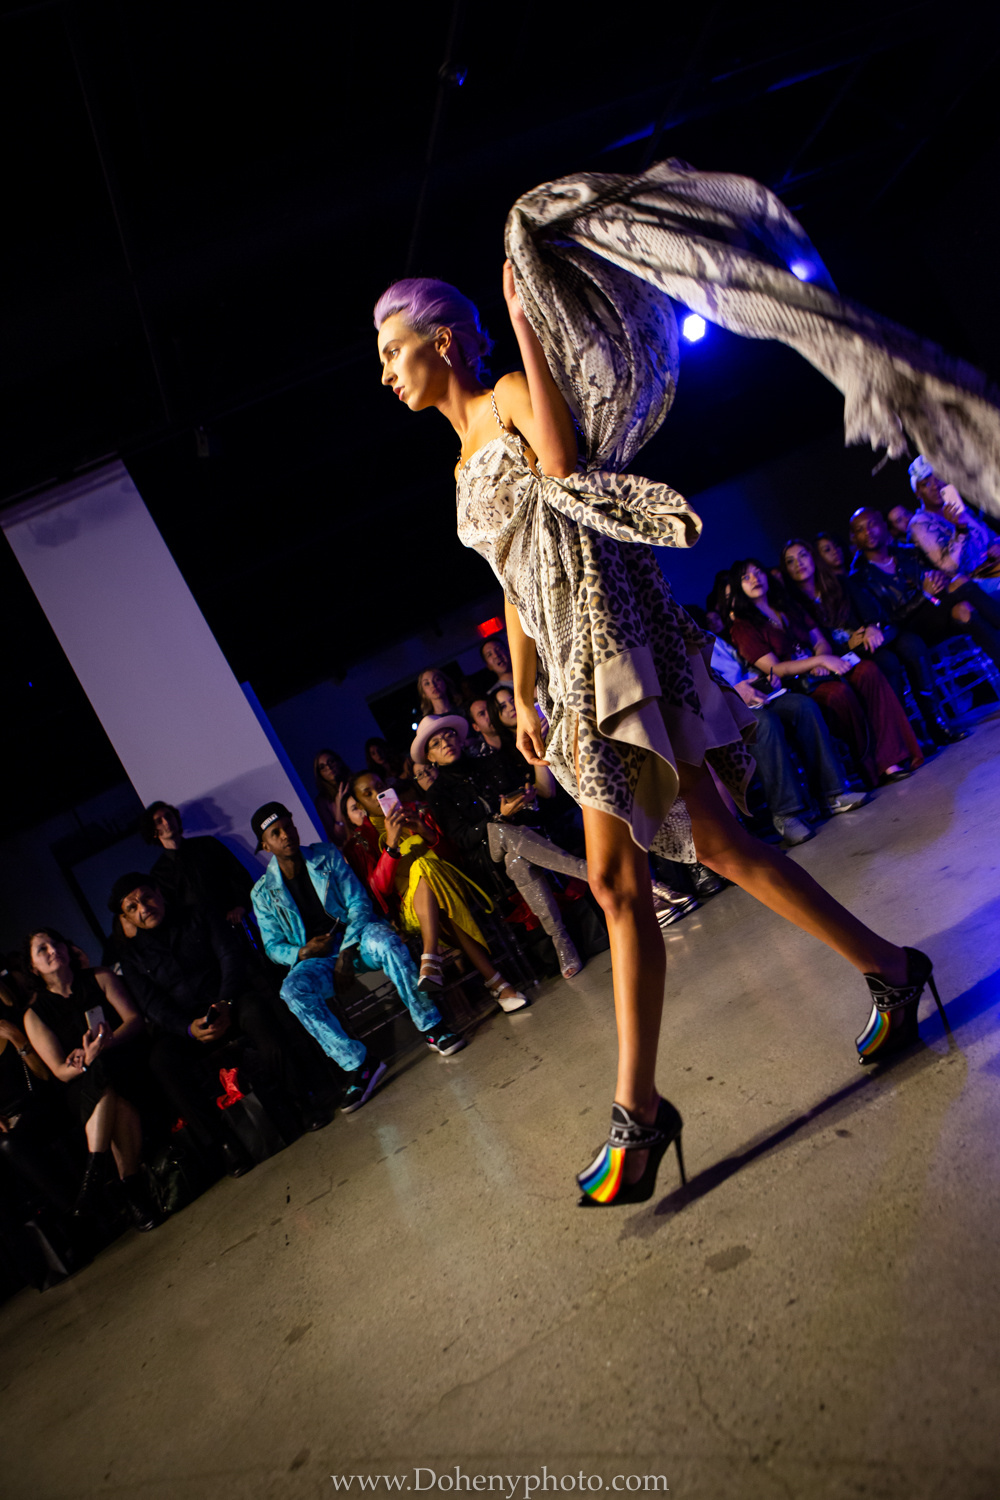 bohemian_society_LA_Fashion_week_Dohenyphoto-4909.jpg